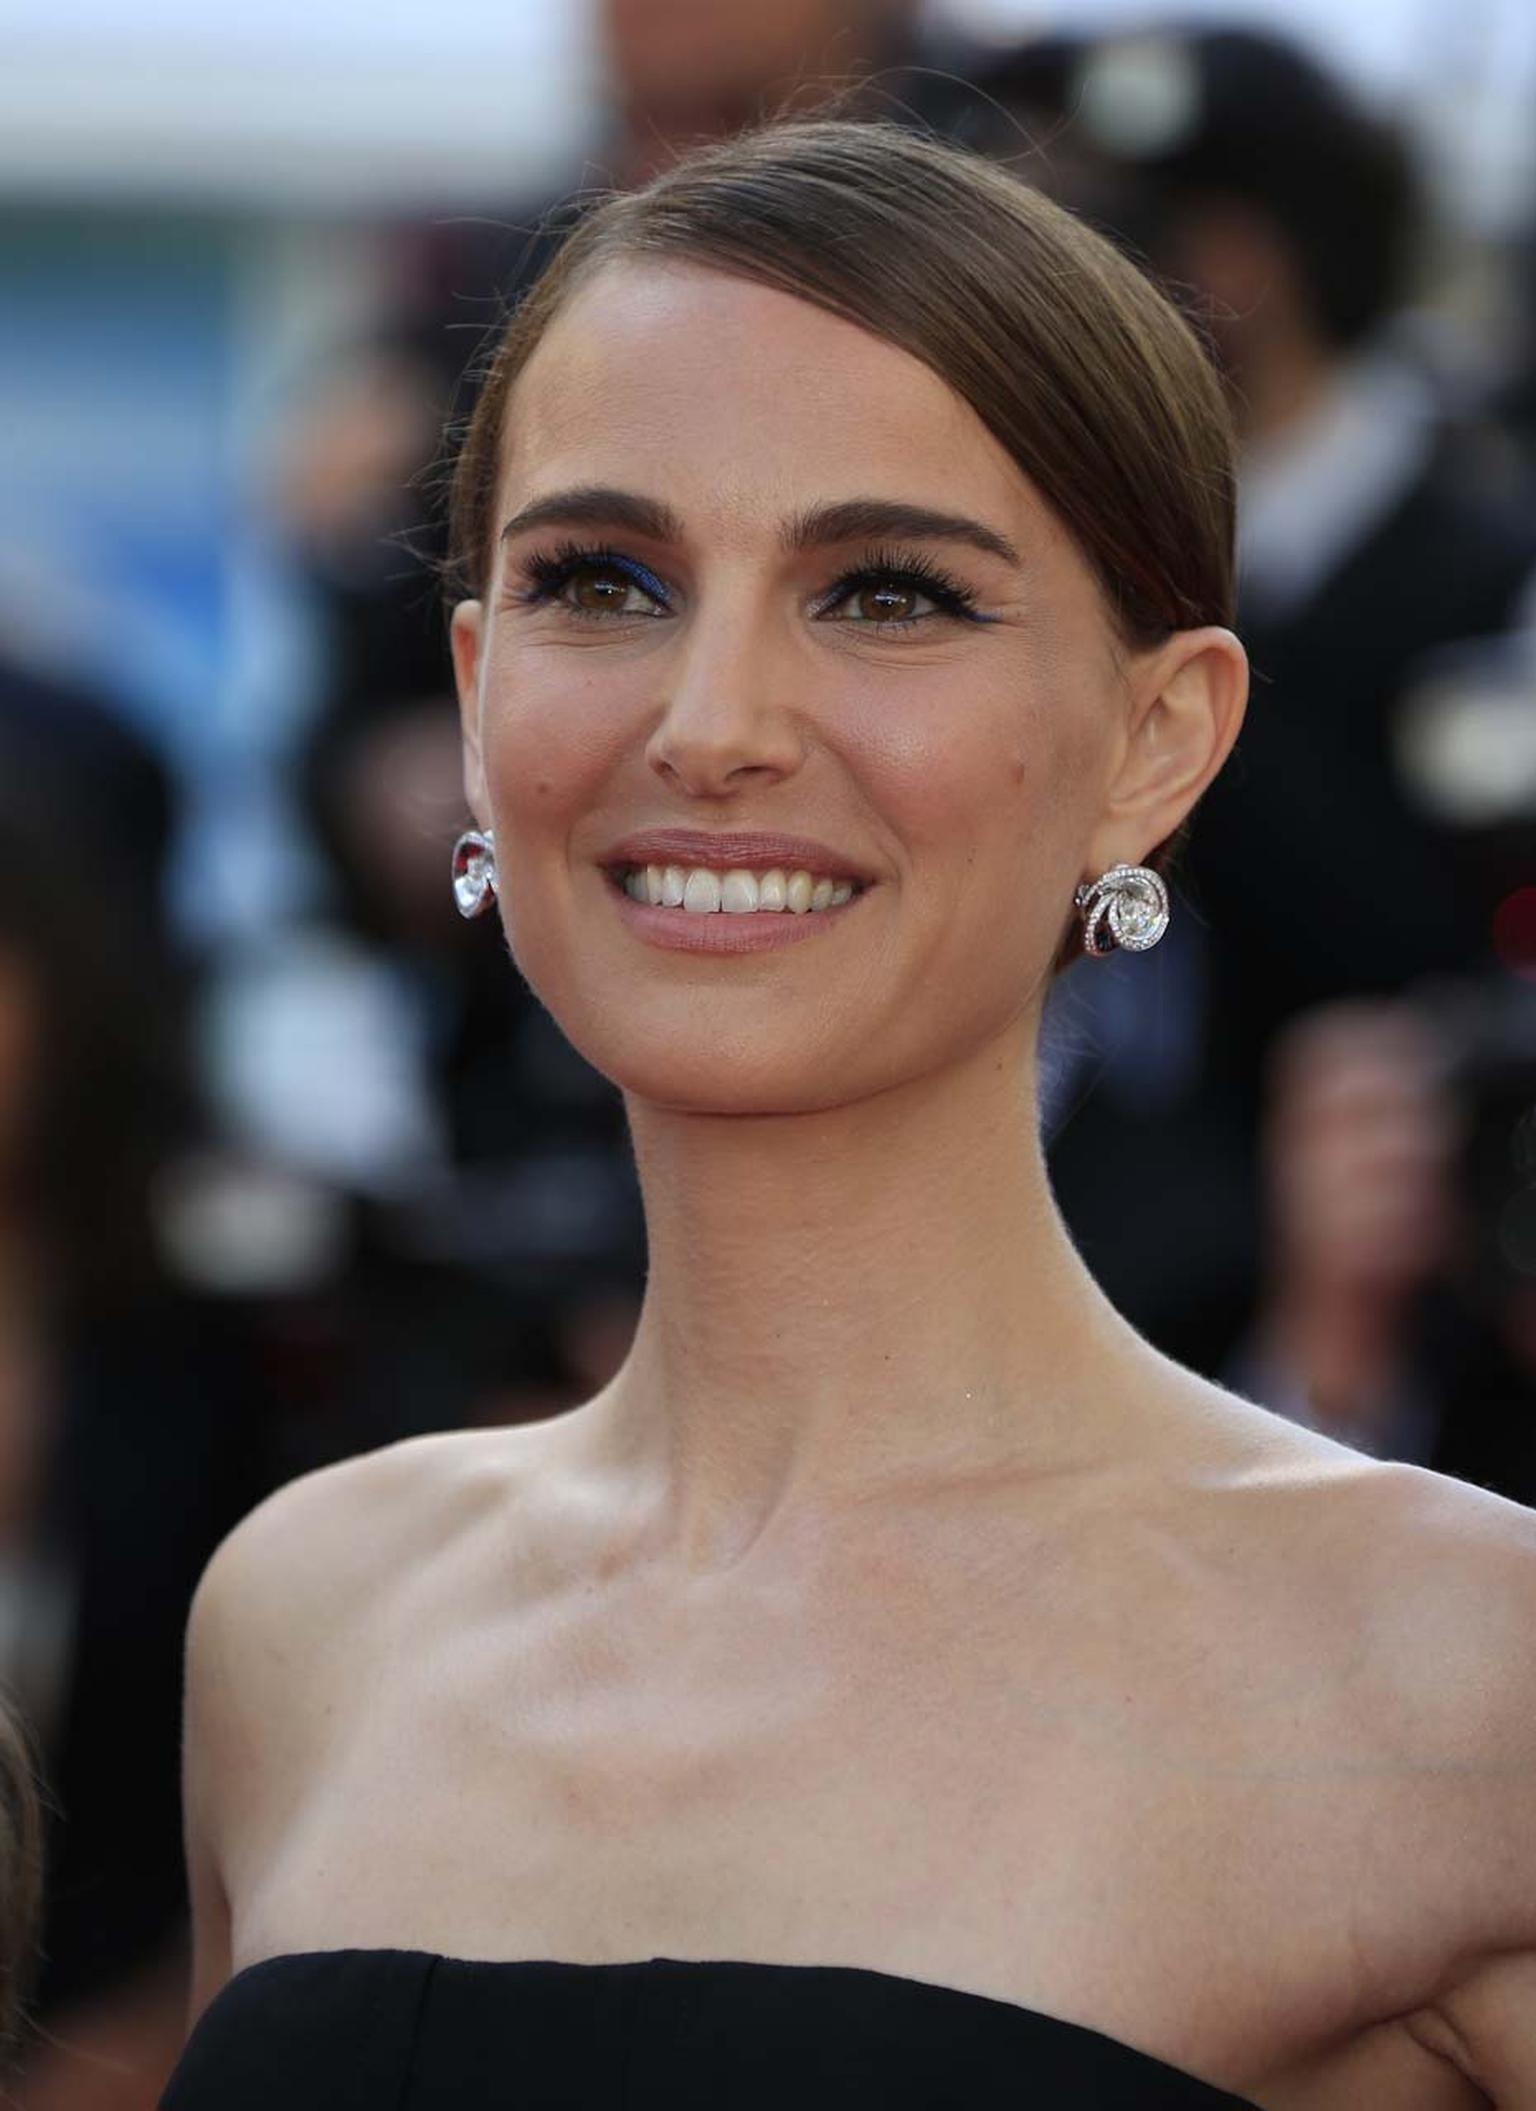 Natalie Portman was a vision of Hollywood glamour in a pair of de GRISOGONO earrings in white gold with diamond-set spirals.